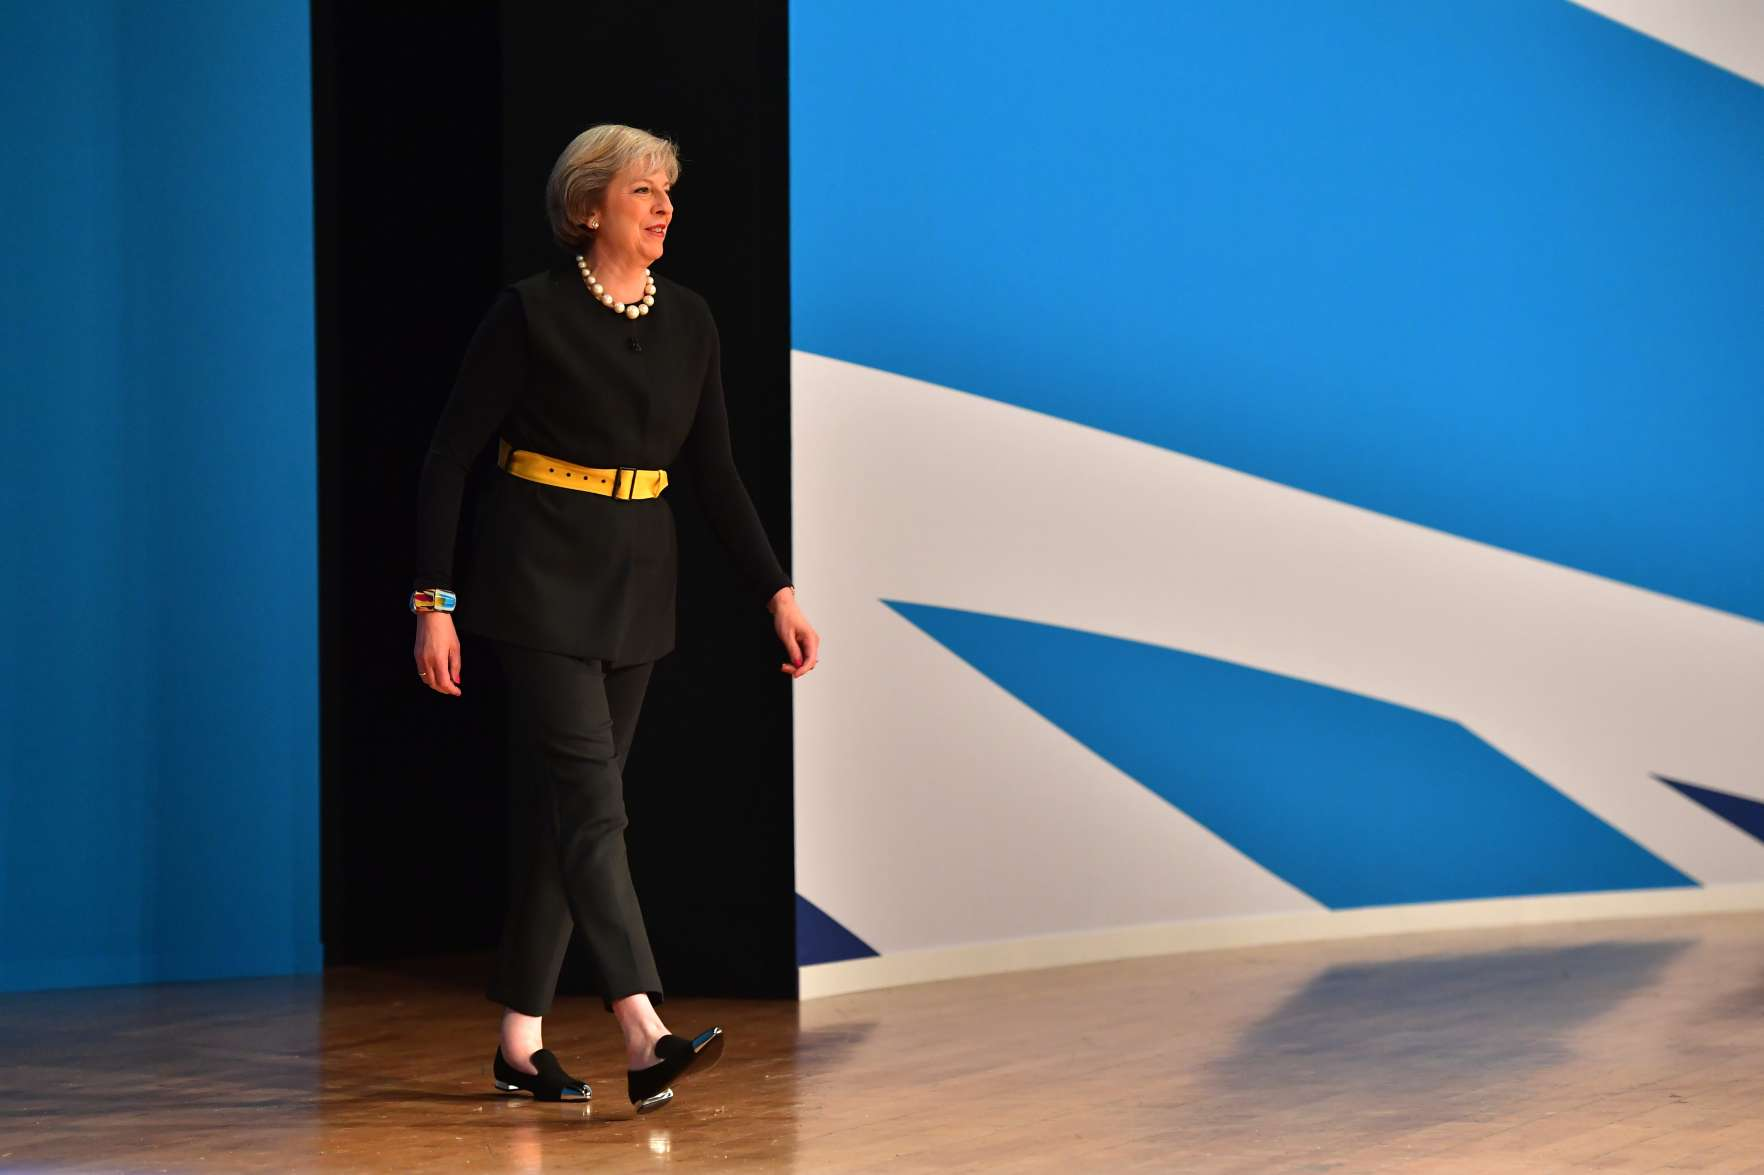 British Prime Minister Theresa May arrives to deliver a speech about Brexit on the first day of the Conservative Party Conference 2016  on October 2, 2016 in Birmingham, England.